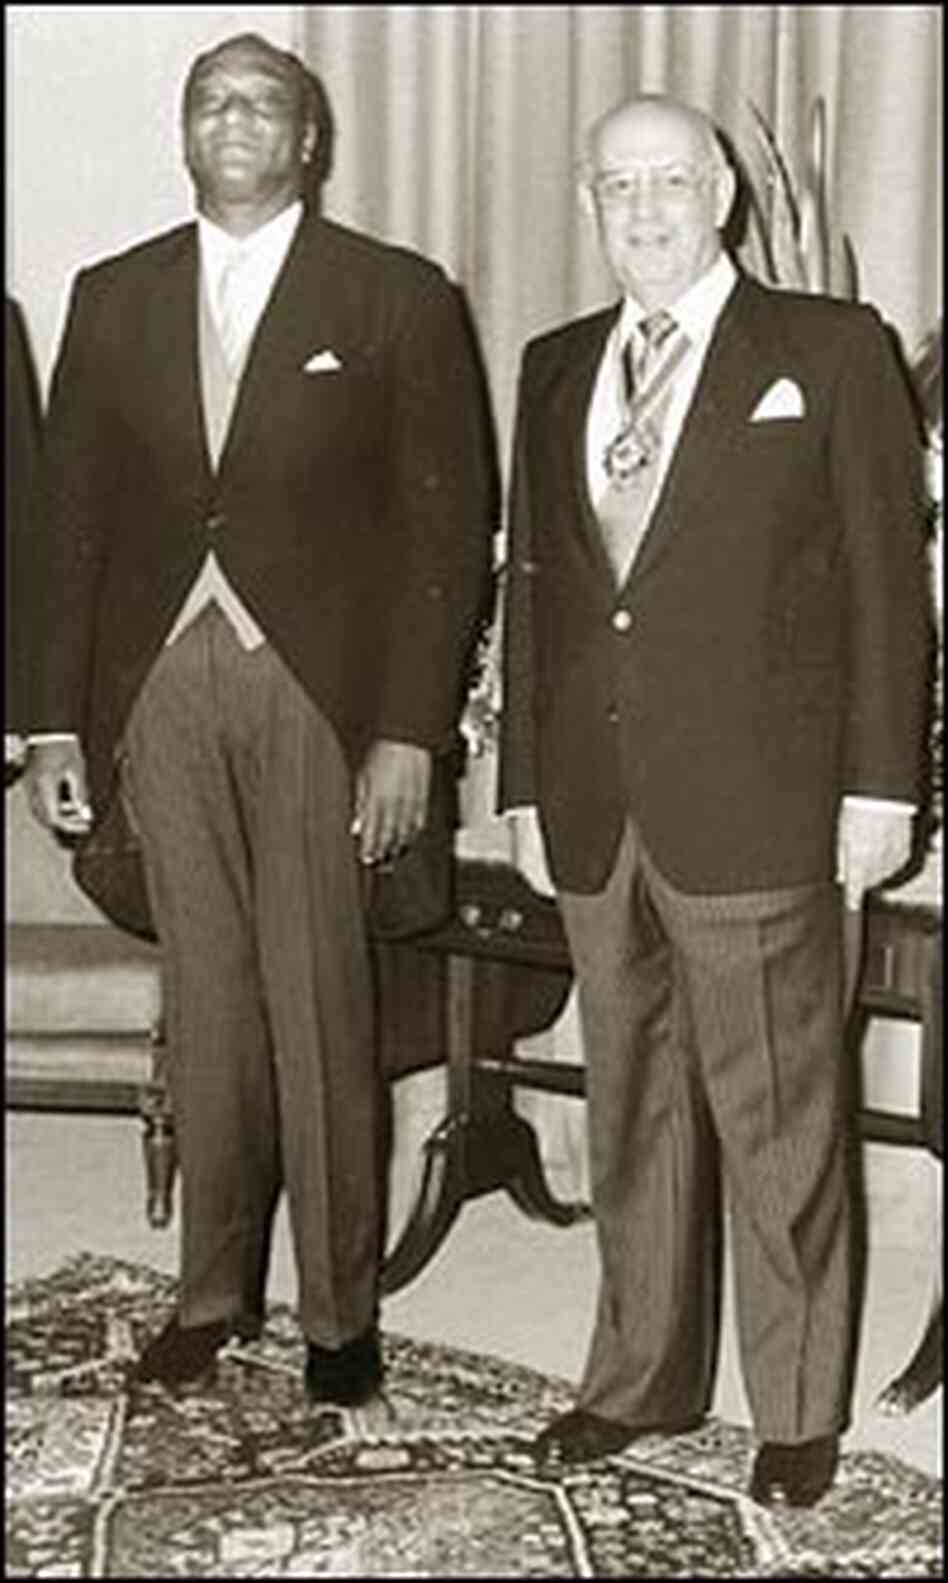 U.S. Ambassador Edward Perkins and South African President P.W. Botha